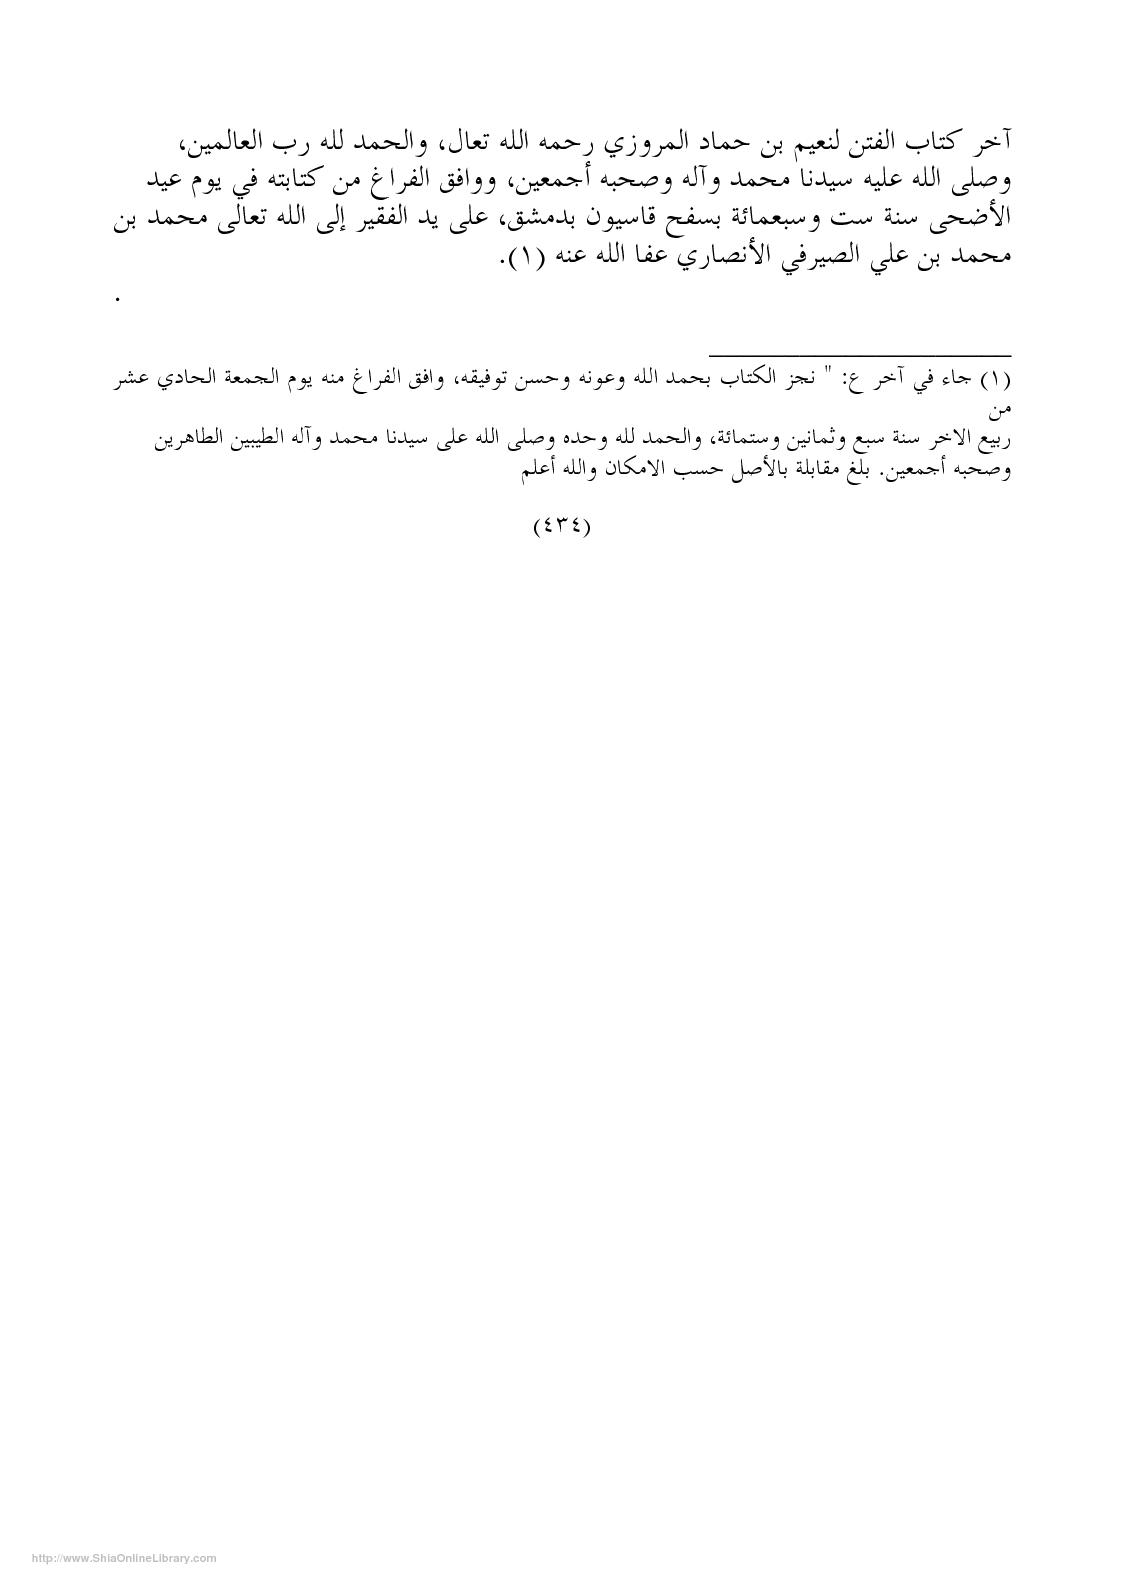 Page 427